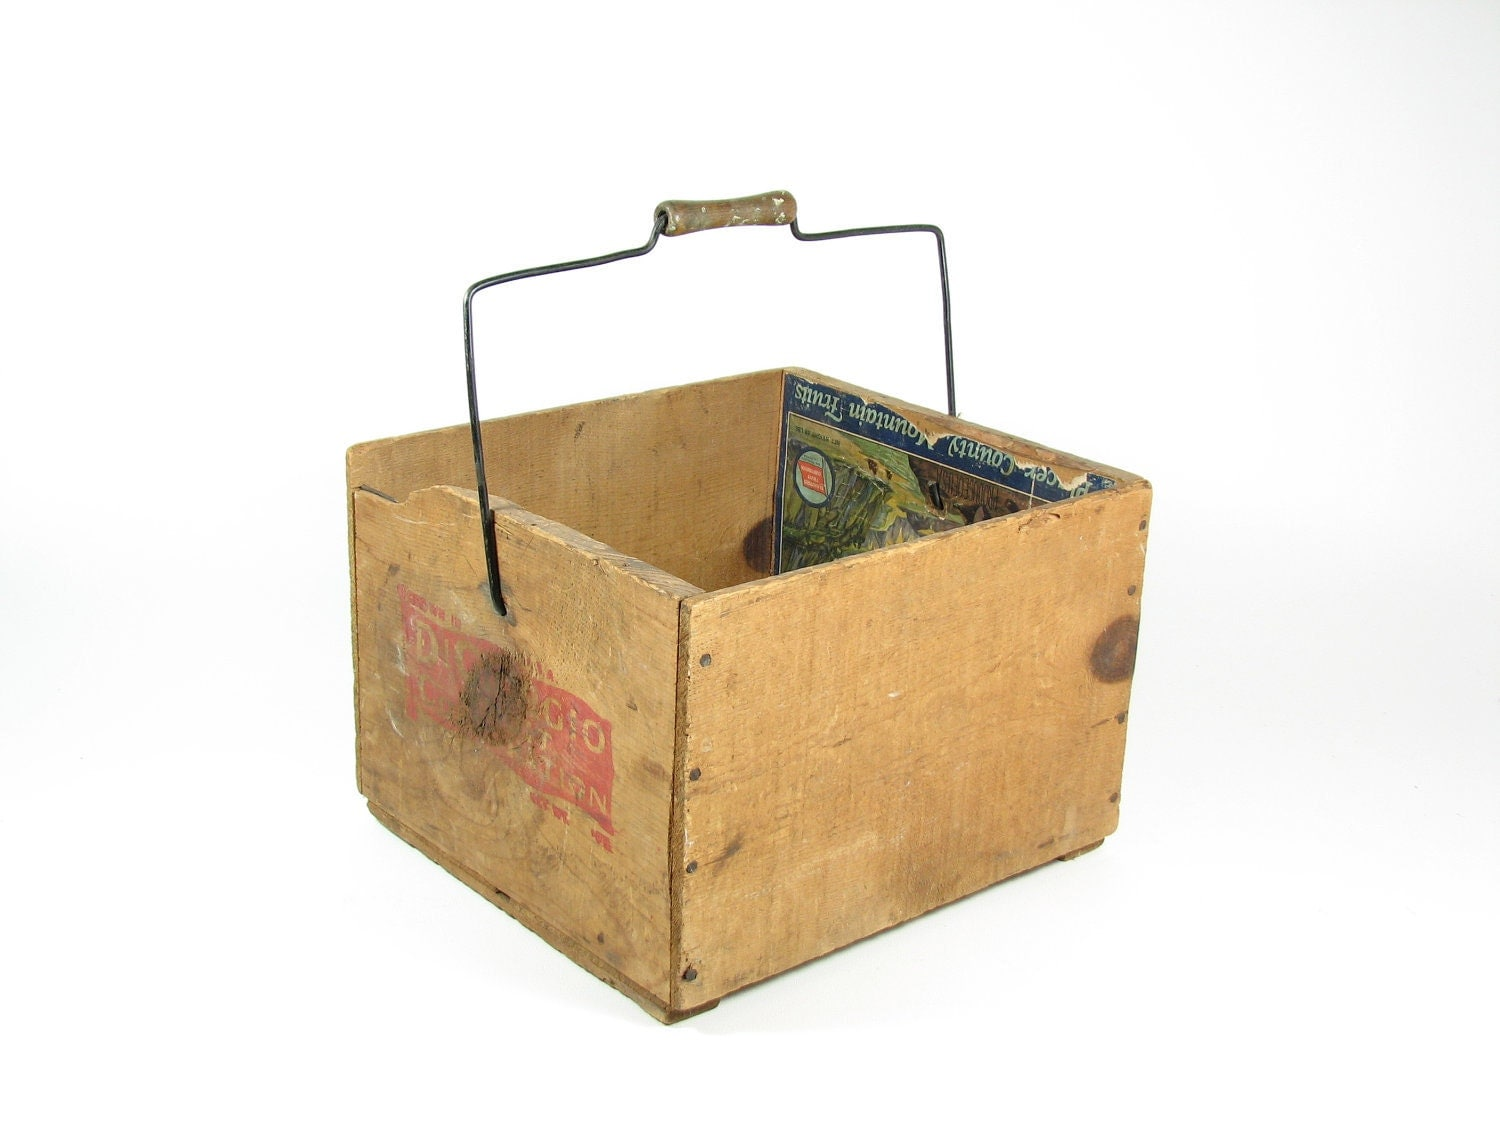 Vintage wood crate wooden box with handle fruit crate placer for Wooden fruit crates